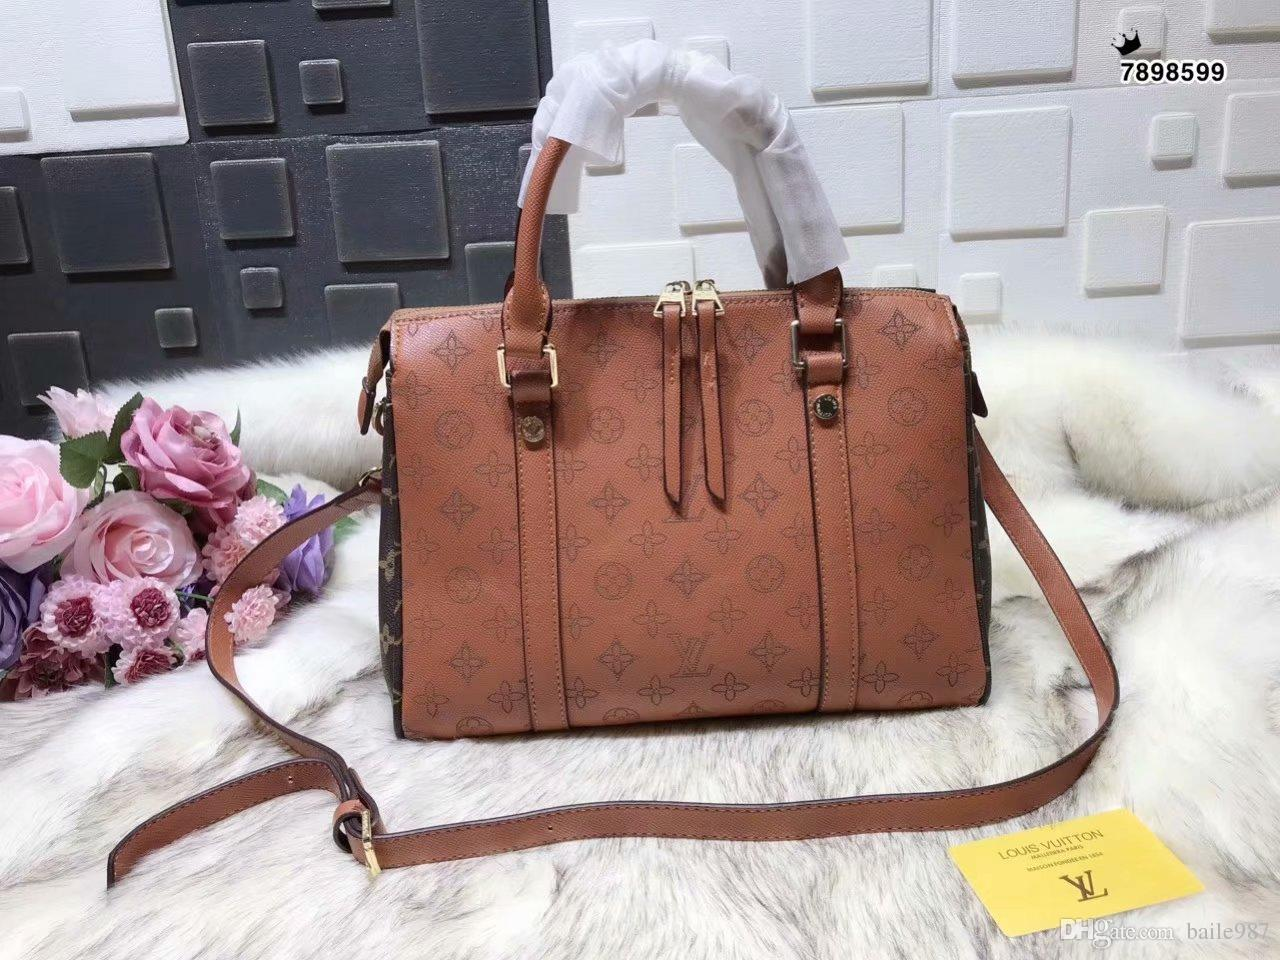 2e6c17e195 2018 Styles Handbag Famous Designer Brand Name Fashion Leather Handbags  Women Tote Shoulder Bags Lady Leather Handbags Bags Purse 32 23 13CM  Messenger Bags ...